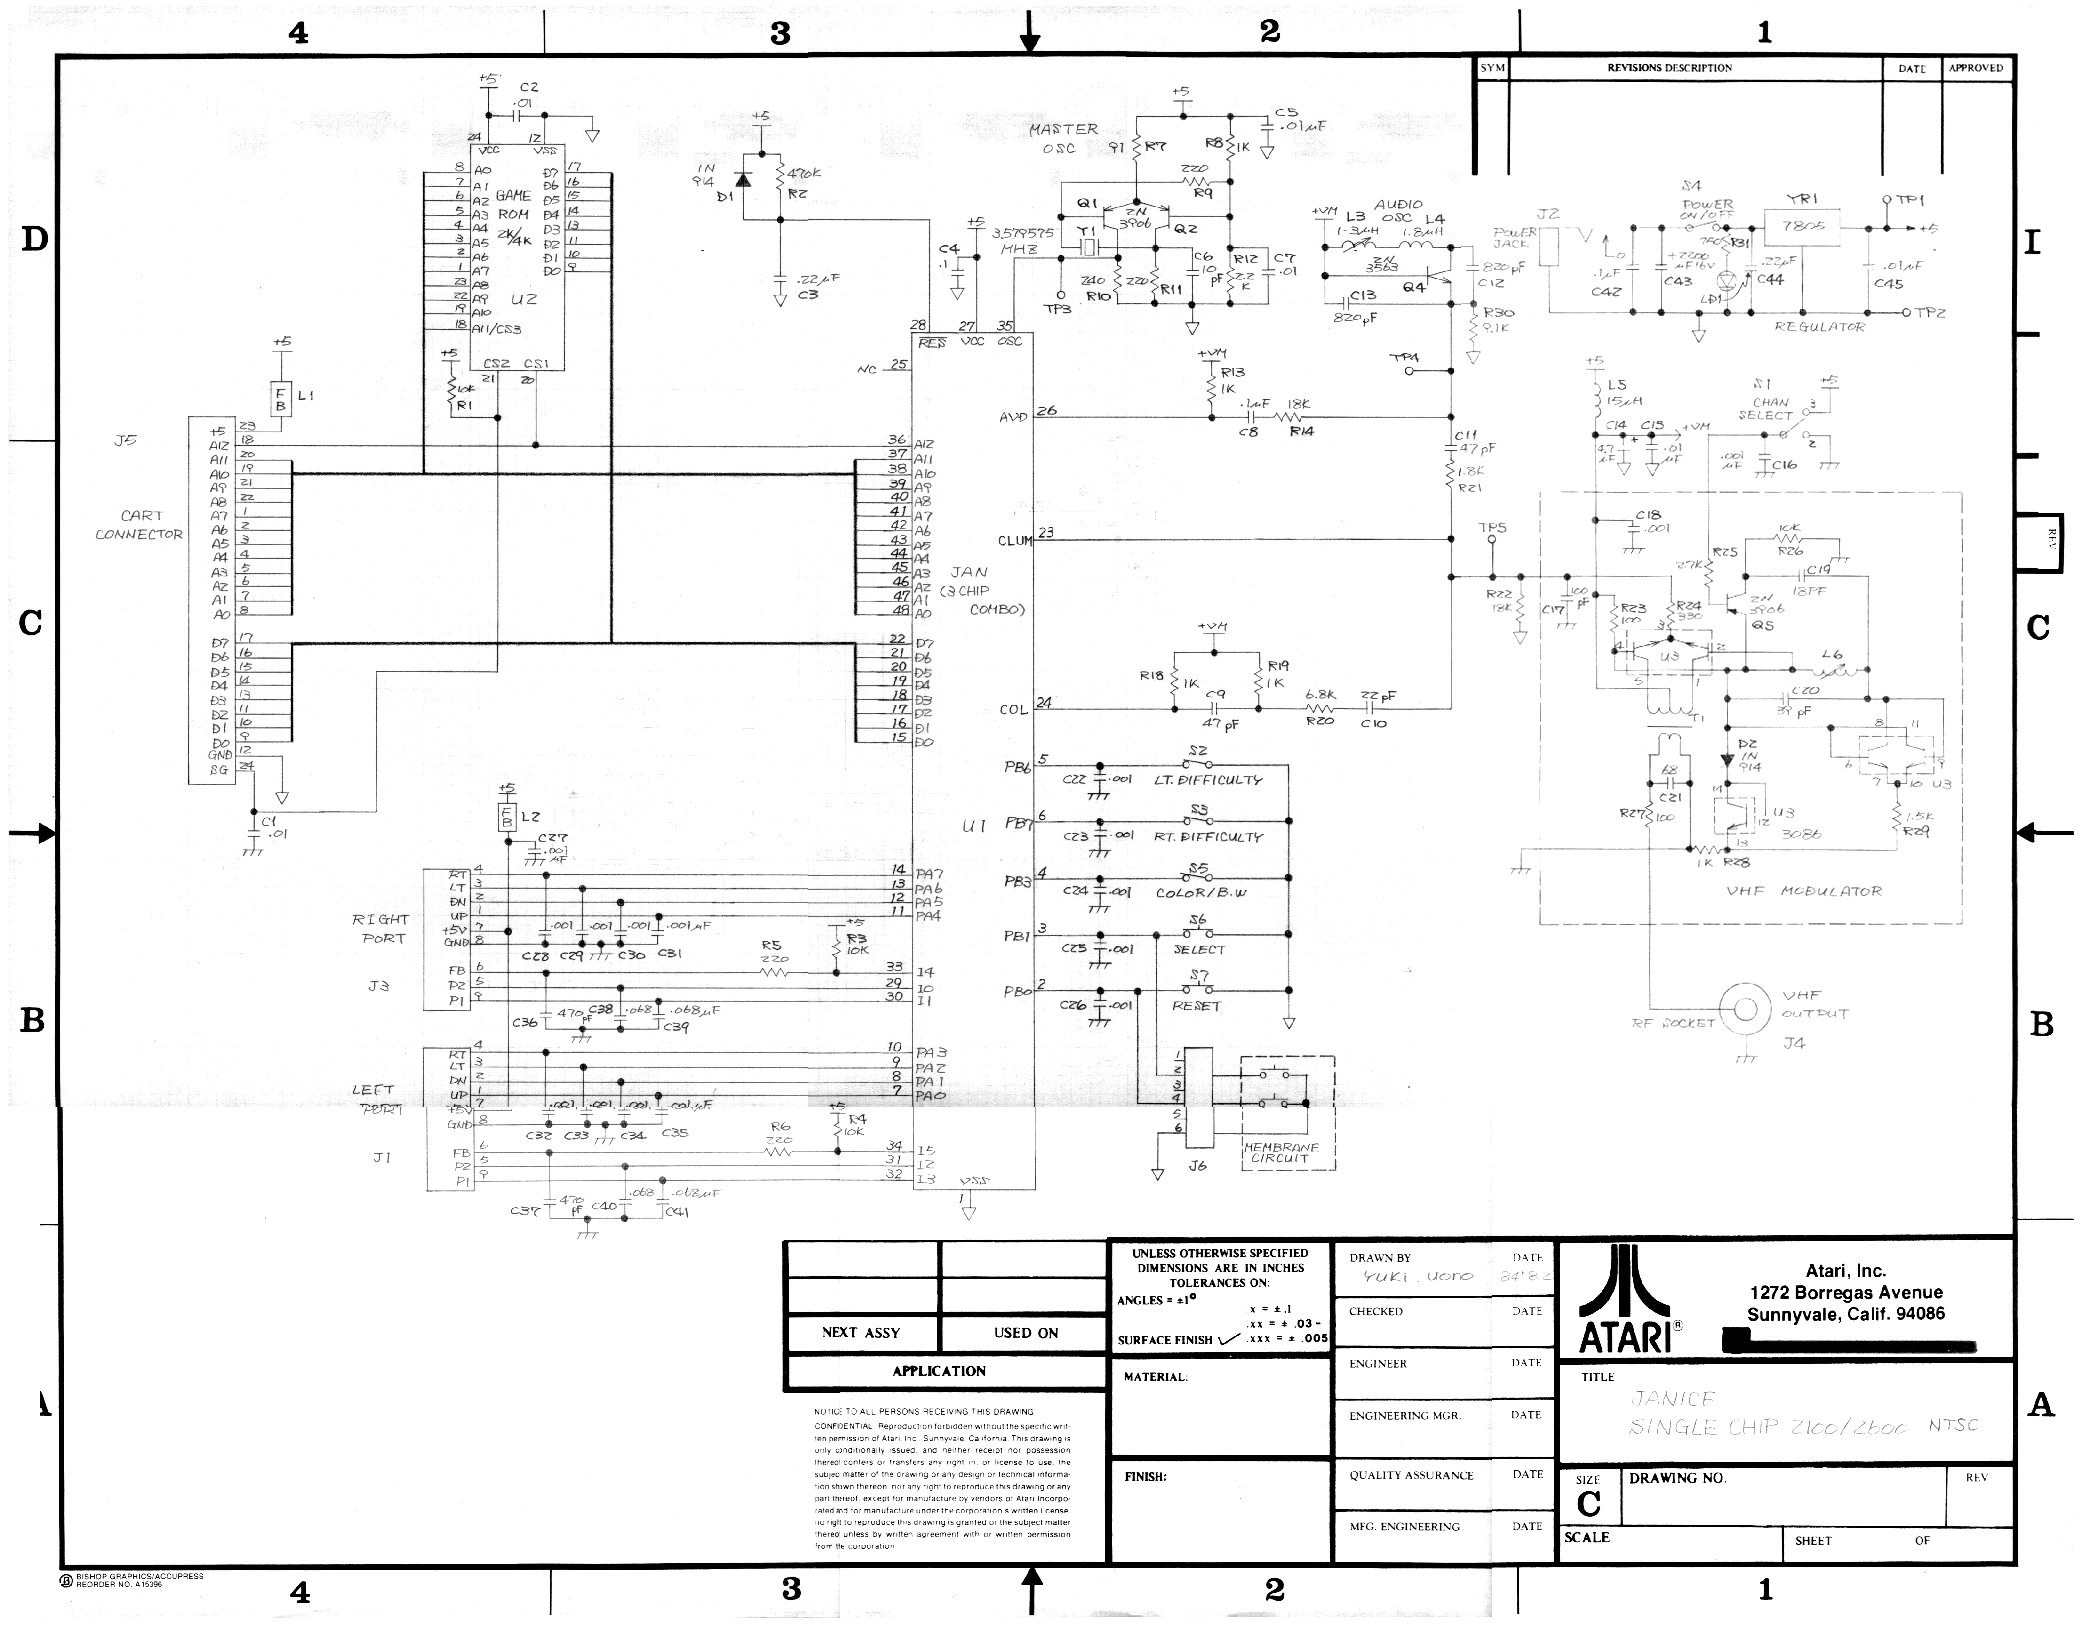 atari 2600 controller wiring diagram electrical wiring diagrams rh wiringforall today